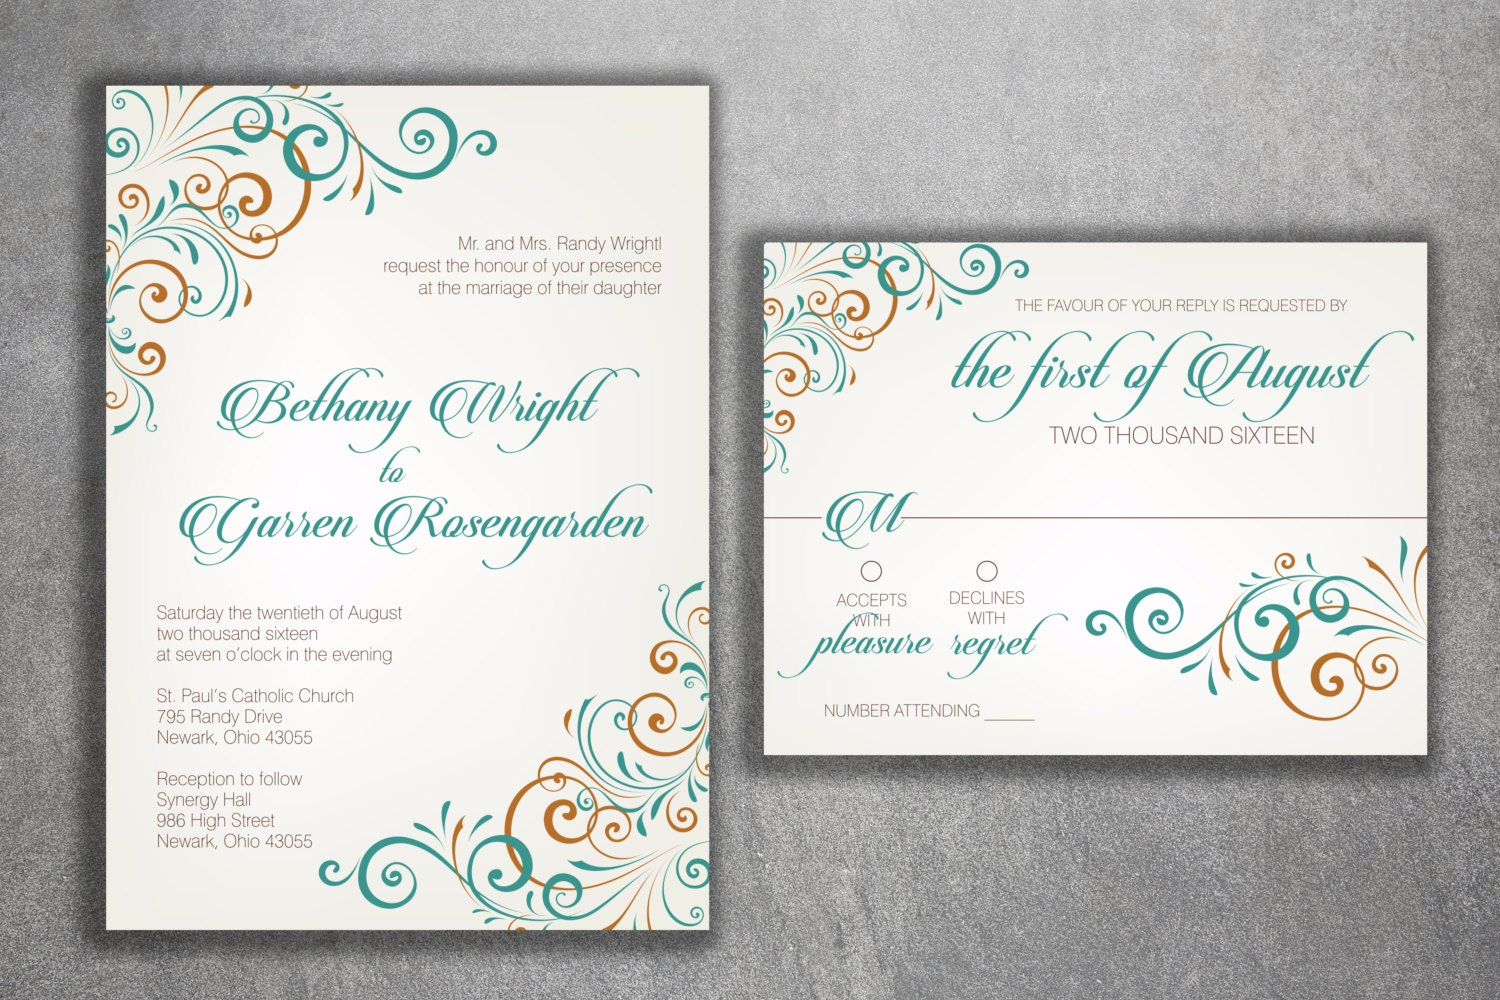 Wedding invitation wedding announcement wedding invitations wedding invitation wedding announcement wedding invitations wedding invite custom wedding invitation wedding invitation set kit rustic monicamarmolfo Image collections